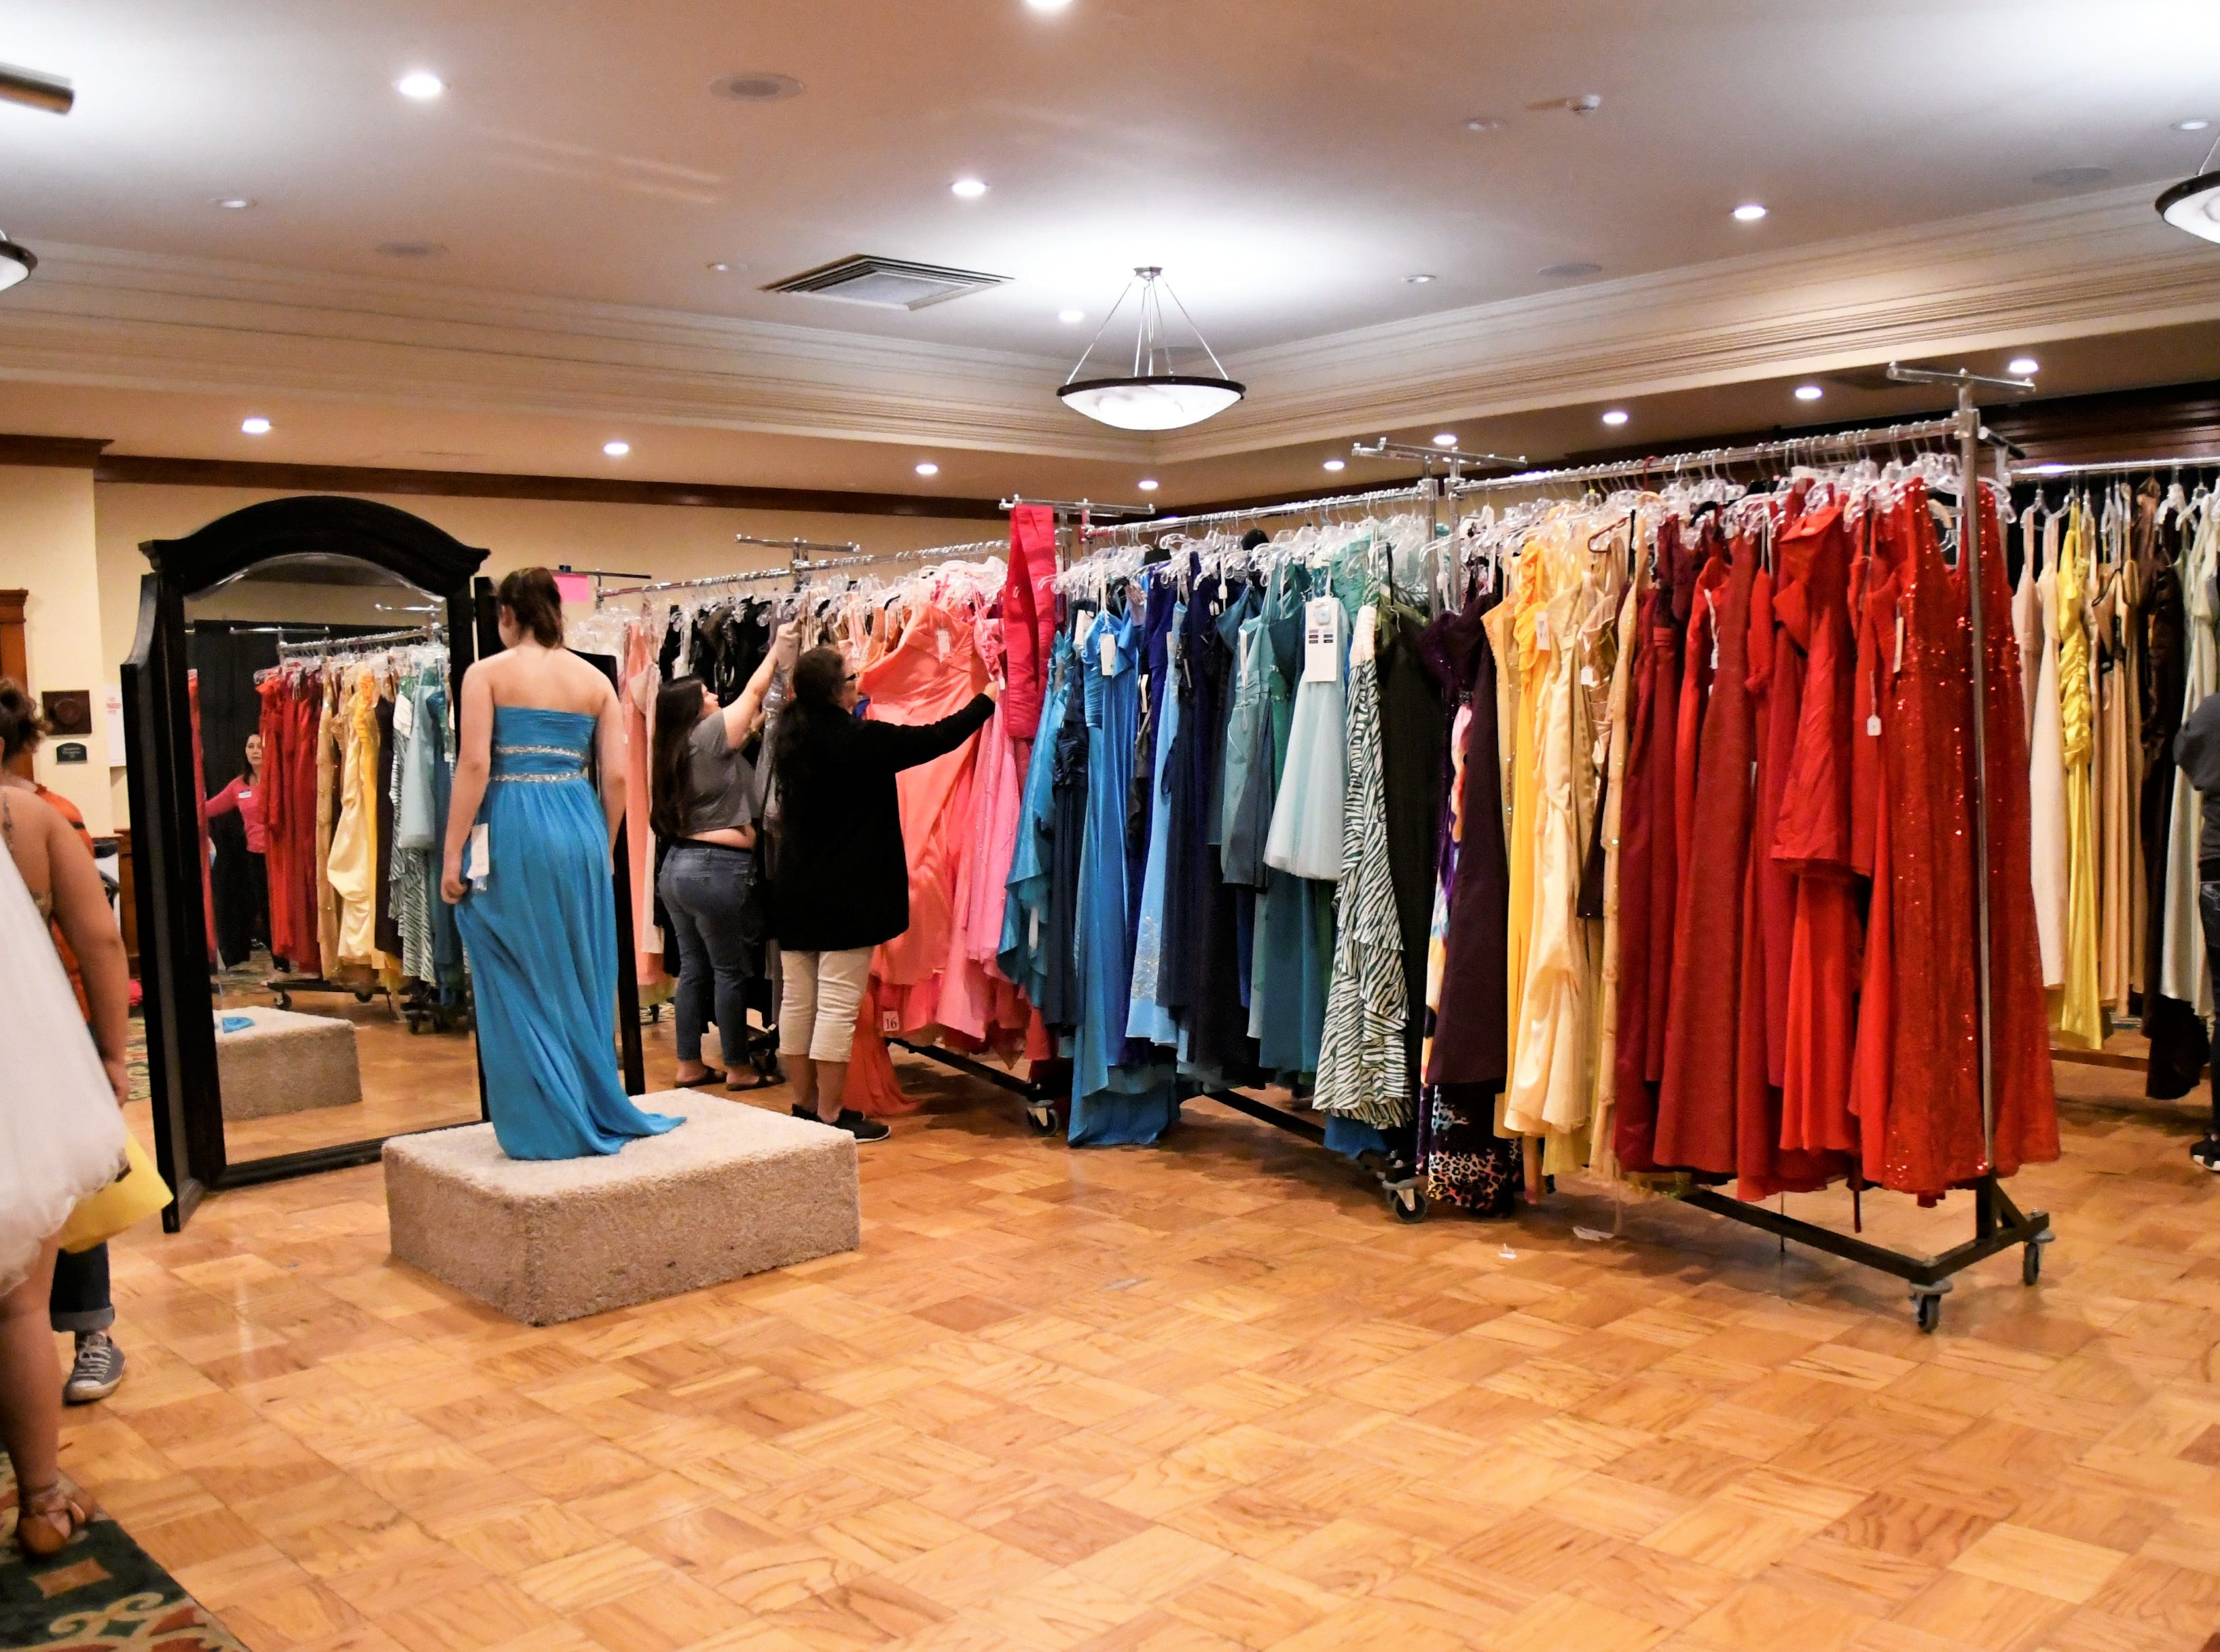 More than 300 junior and senior high school girls signed up to shop for a free prom dress on Saturday, April 13, 2019. The prom dress event is put on by local nonprofit Enchanted Evening. The organization offers free, gently-used prom dresses and accessories to Tulare County girls.